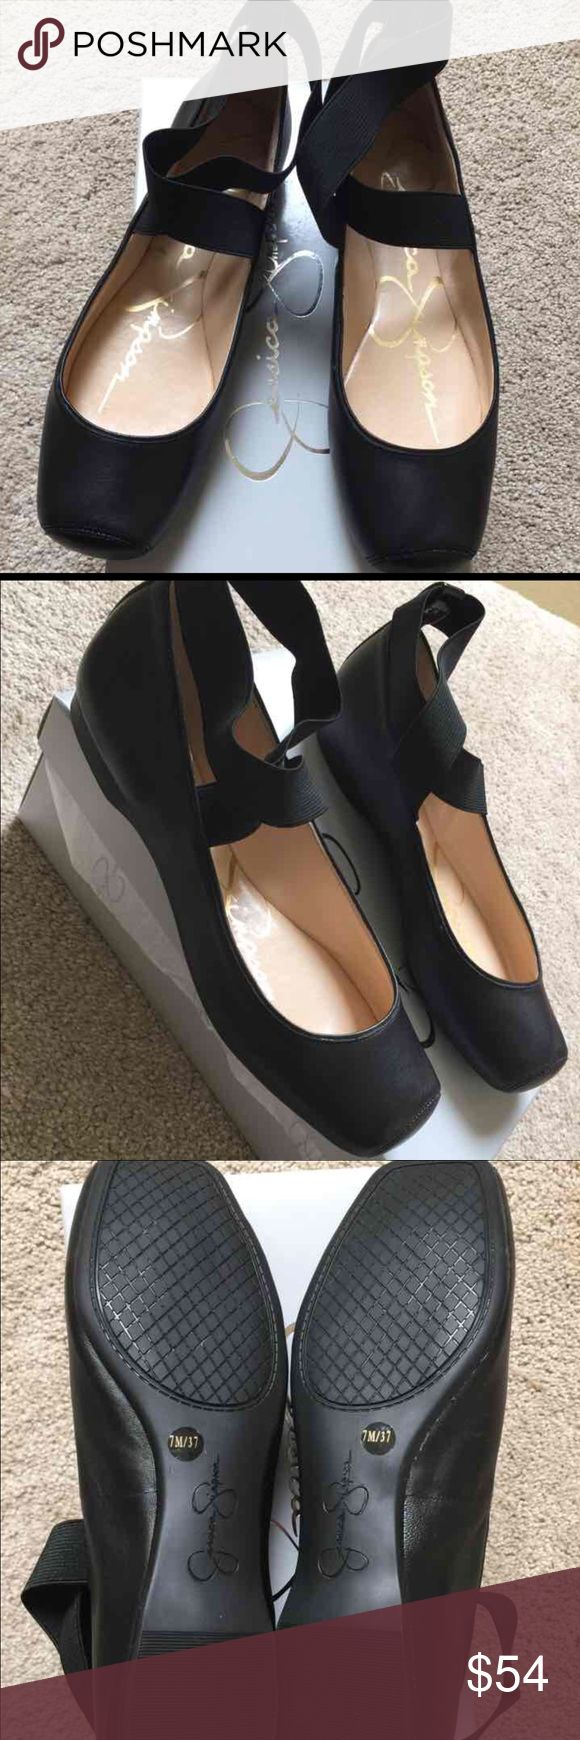 Jessica Simpson Ballet Flats Black Size 7 Super cute, brand new, never worn. Just tried on. Size 7/37. They look just like ballet slippers. Comes with original box. Paid 69 plus tax Jessica Simpson Shoes Flats & Loafers